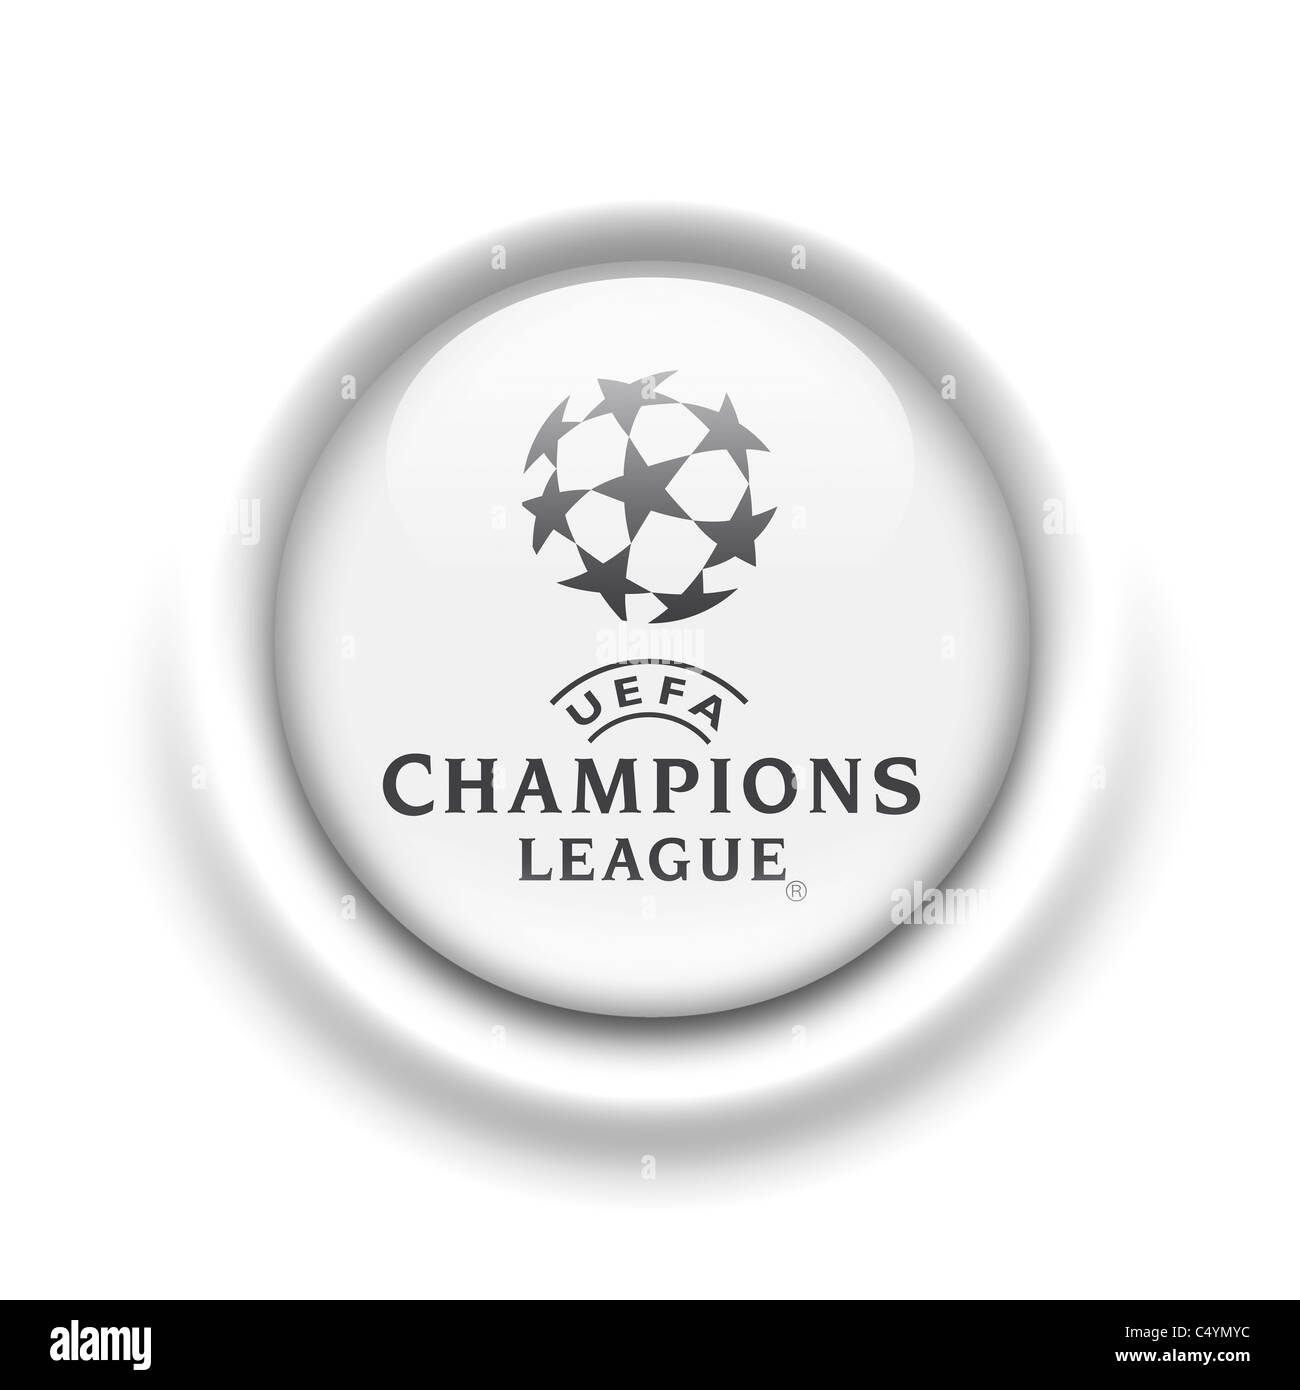 champions league uefa logo flag symbol icon stock photo alamy https www alamy com stock photo champions league uefa logo flag symbol icon 37488512 html